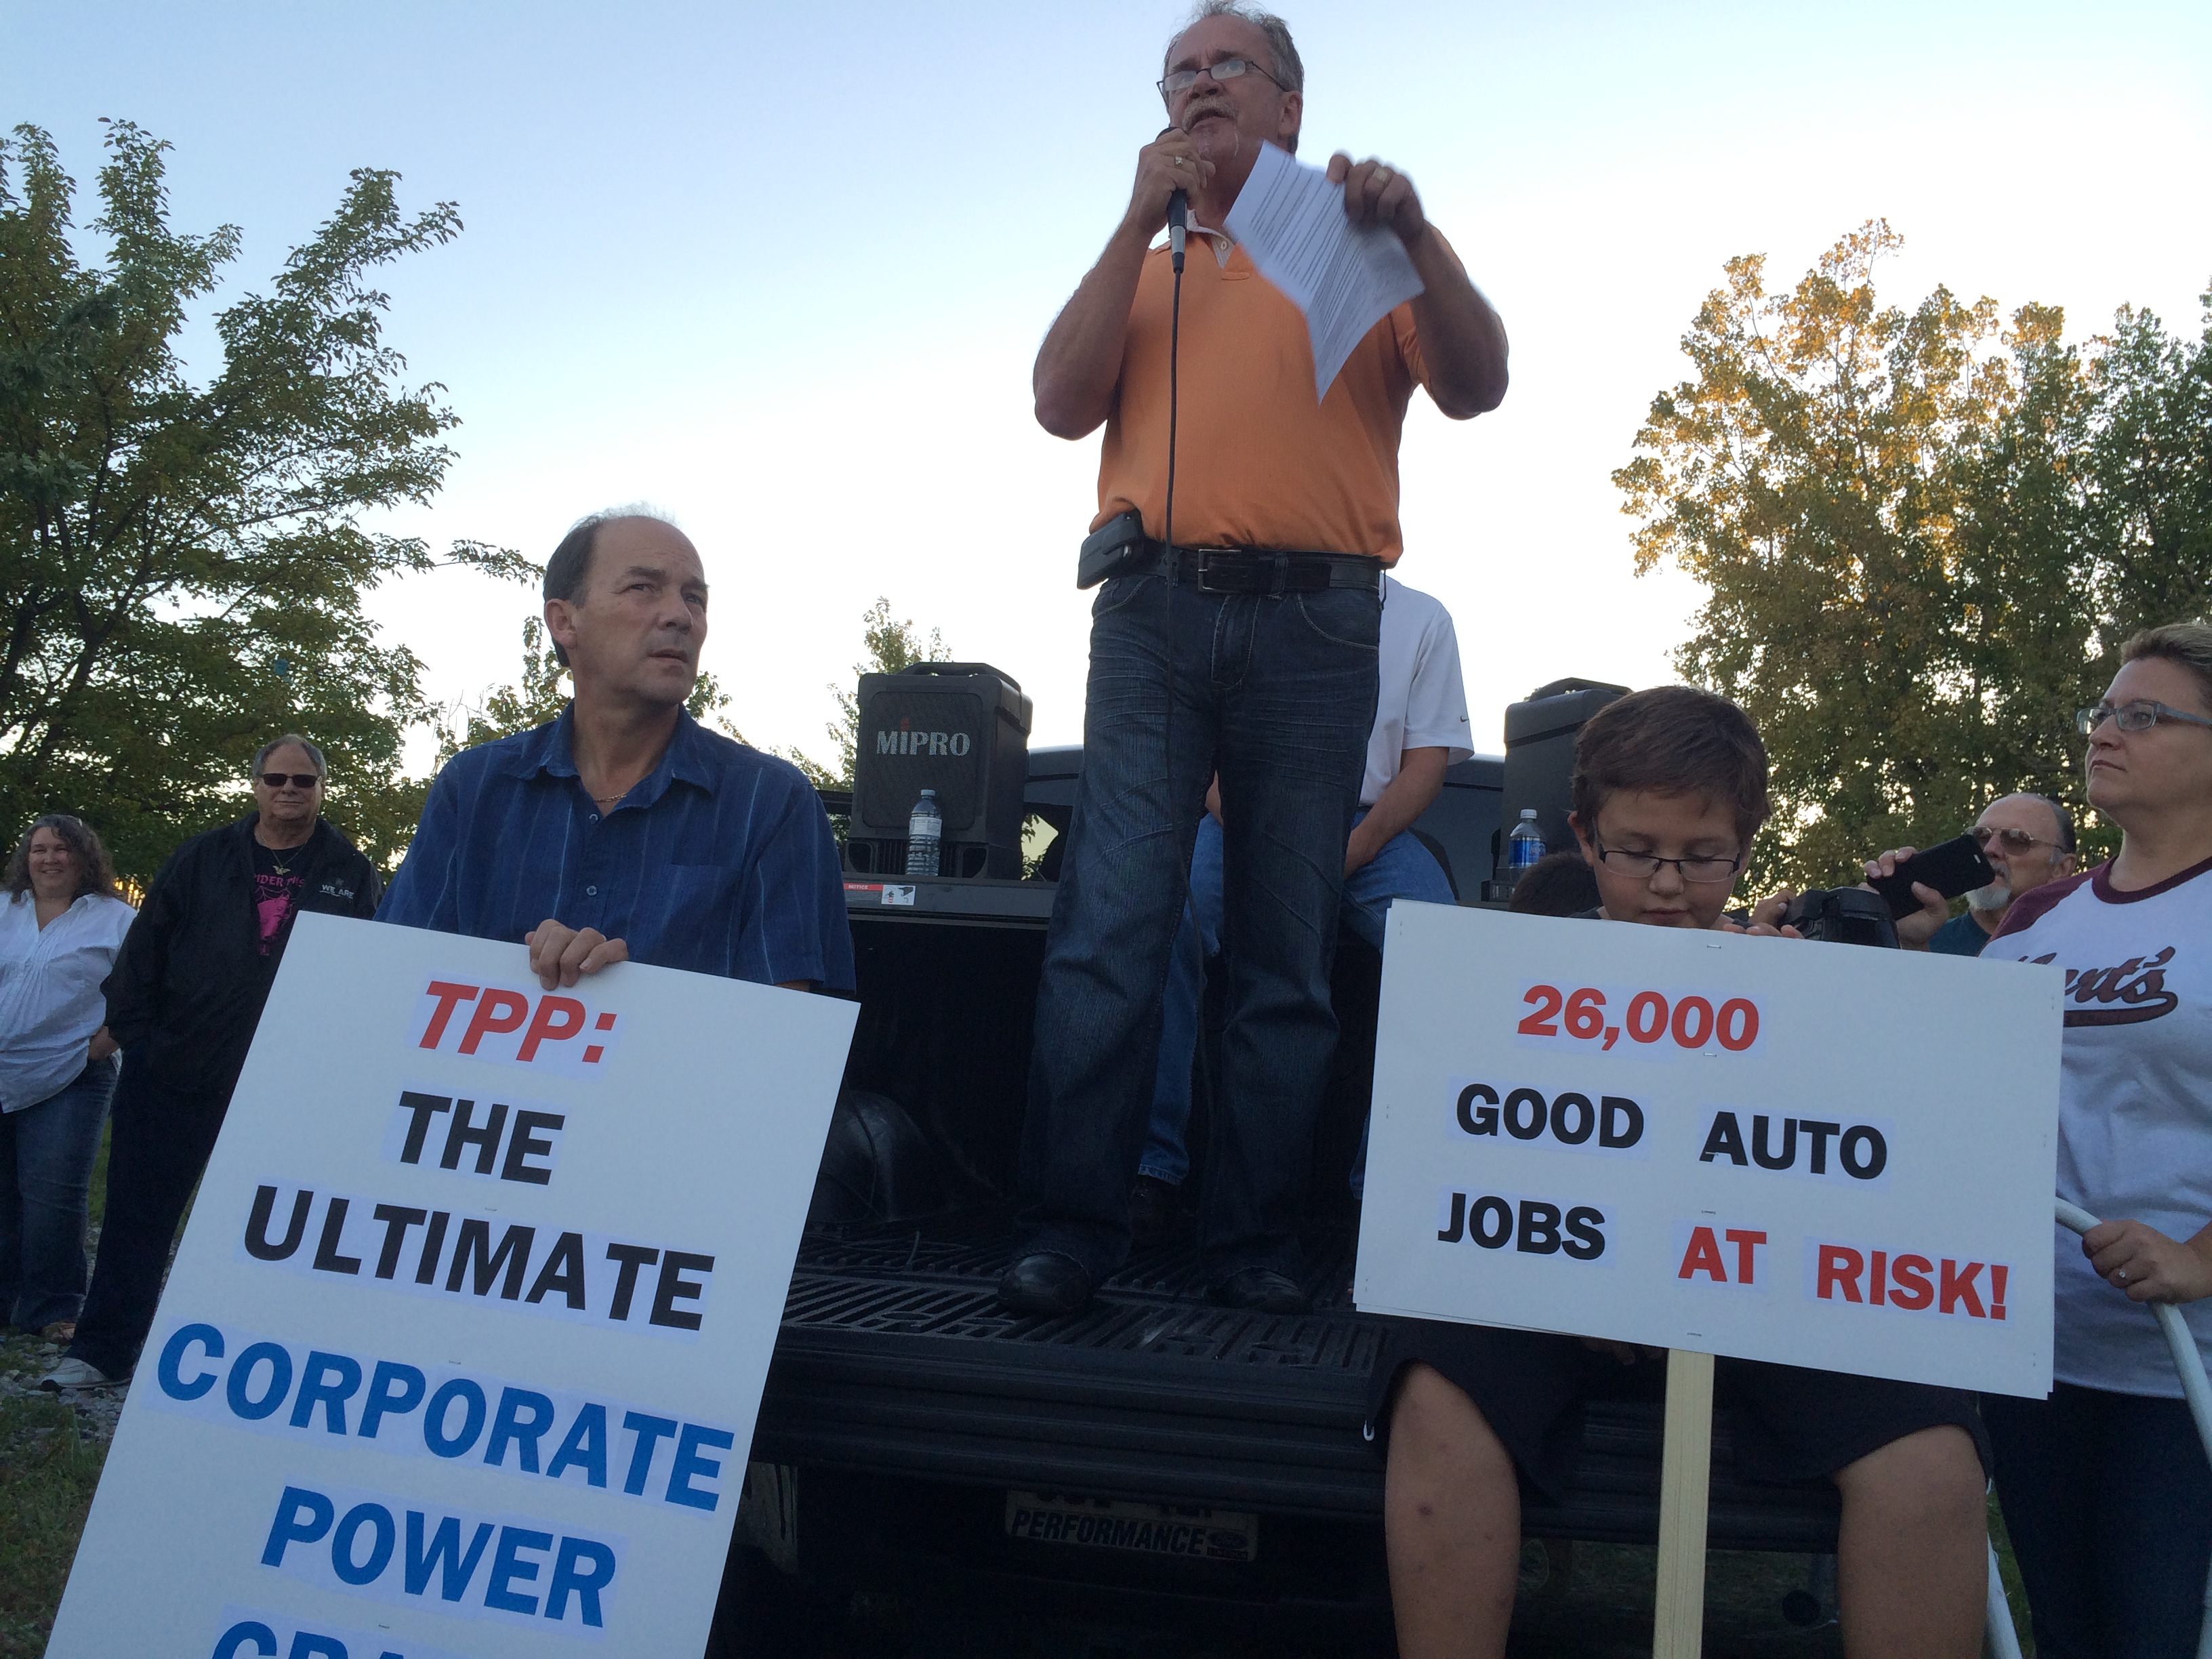 Unions and other supporters rally against the TPP in Essex on September 23, 2015. (Photo by Ricardo Veneza)